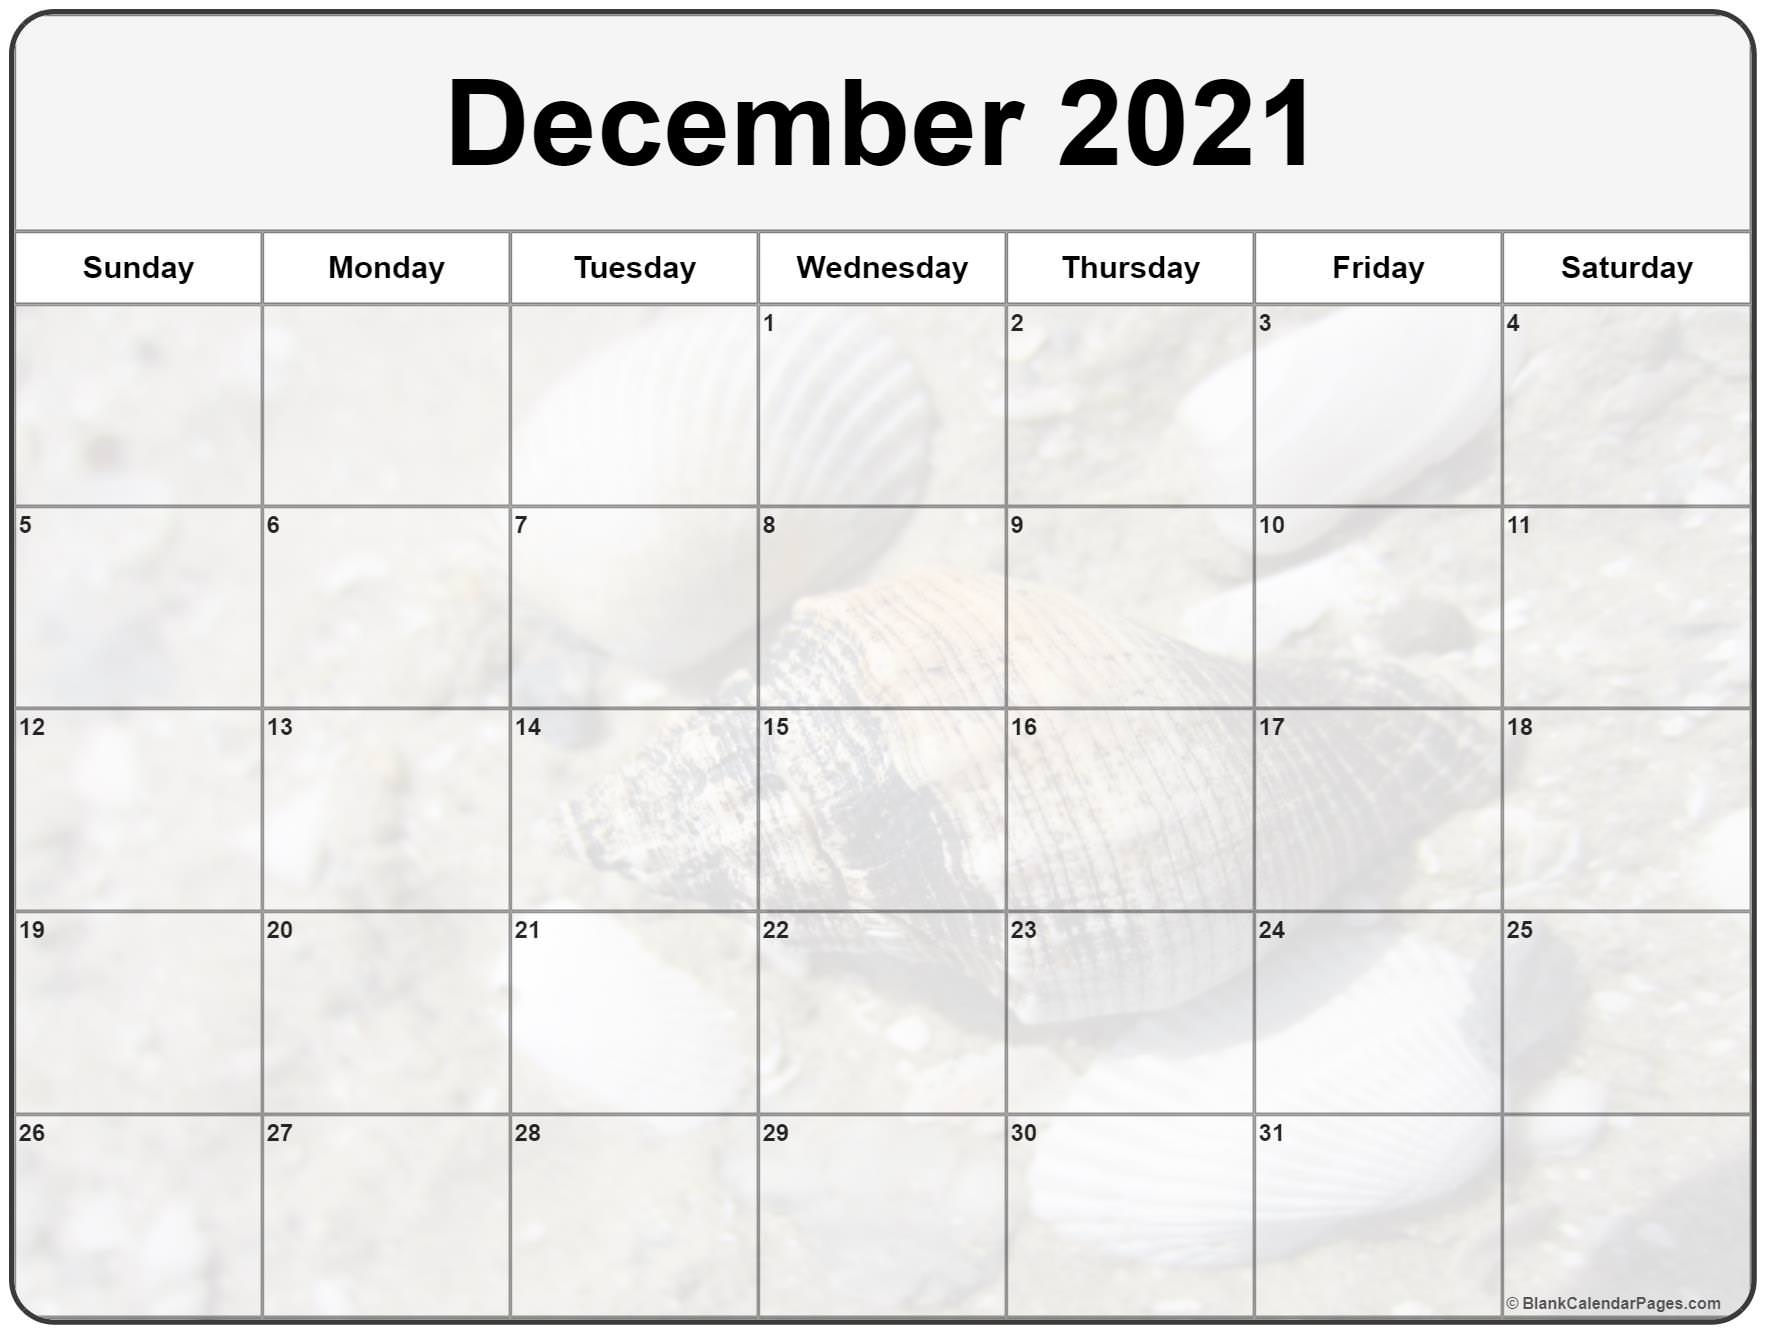 December 2021 image calendar  with cute seashells filters